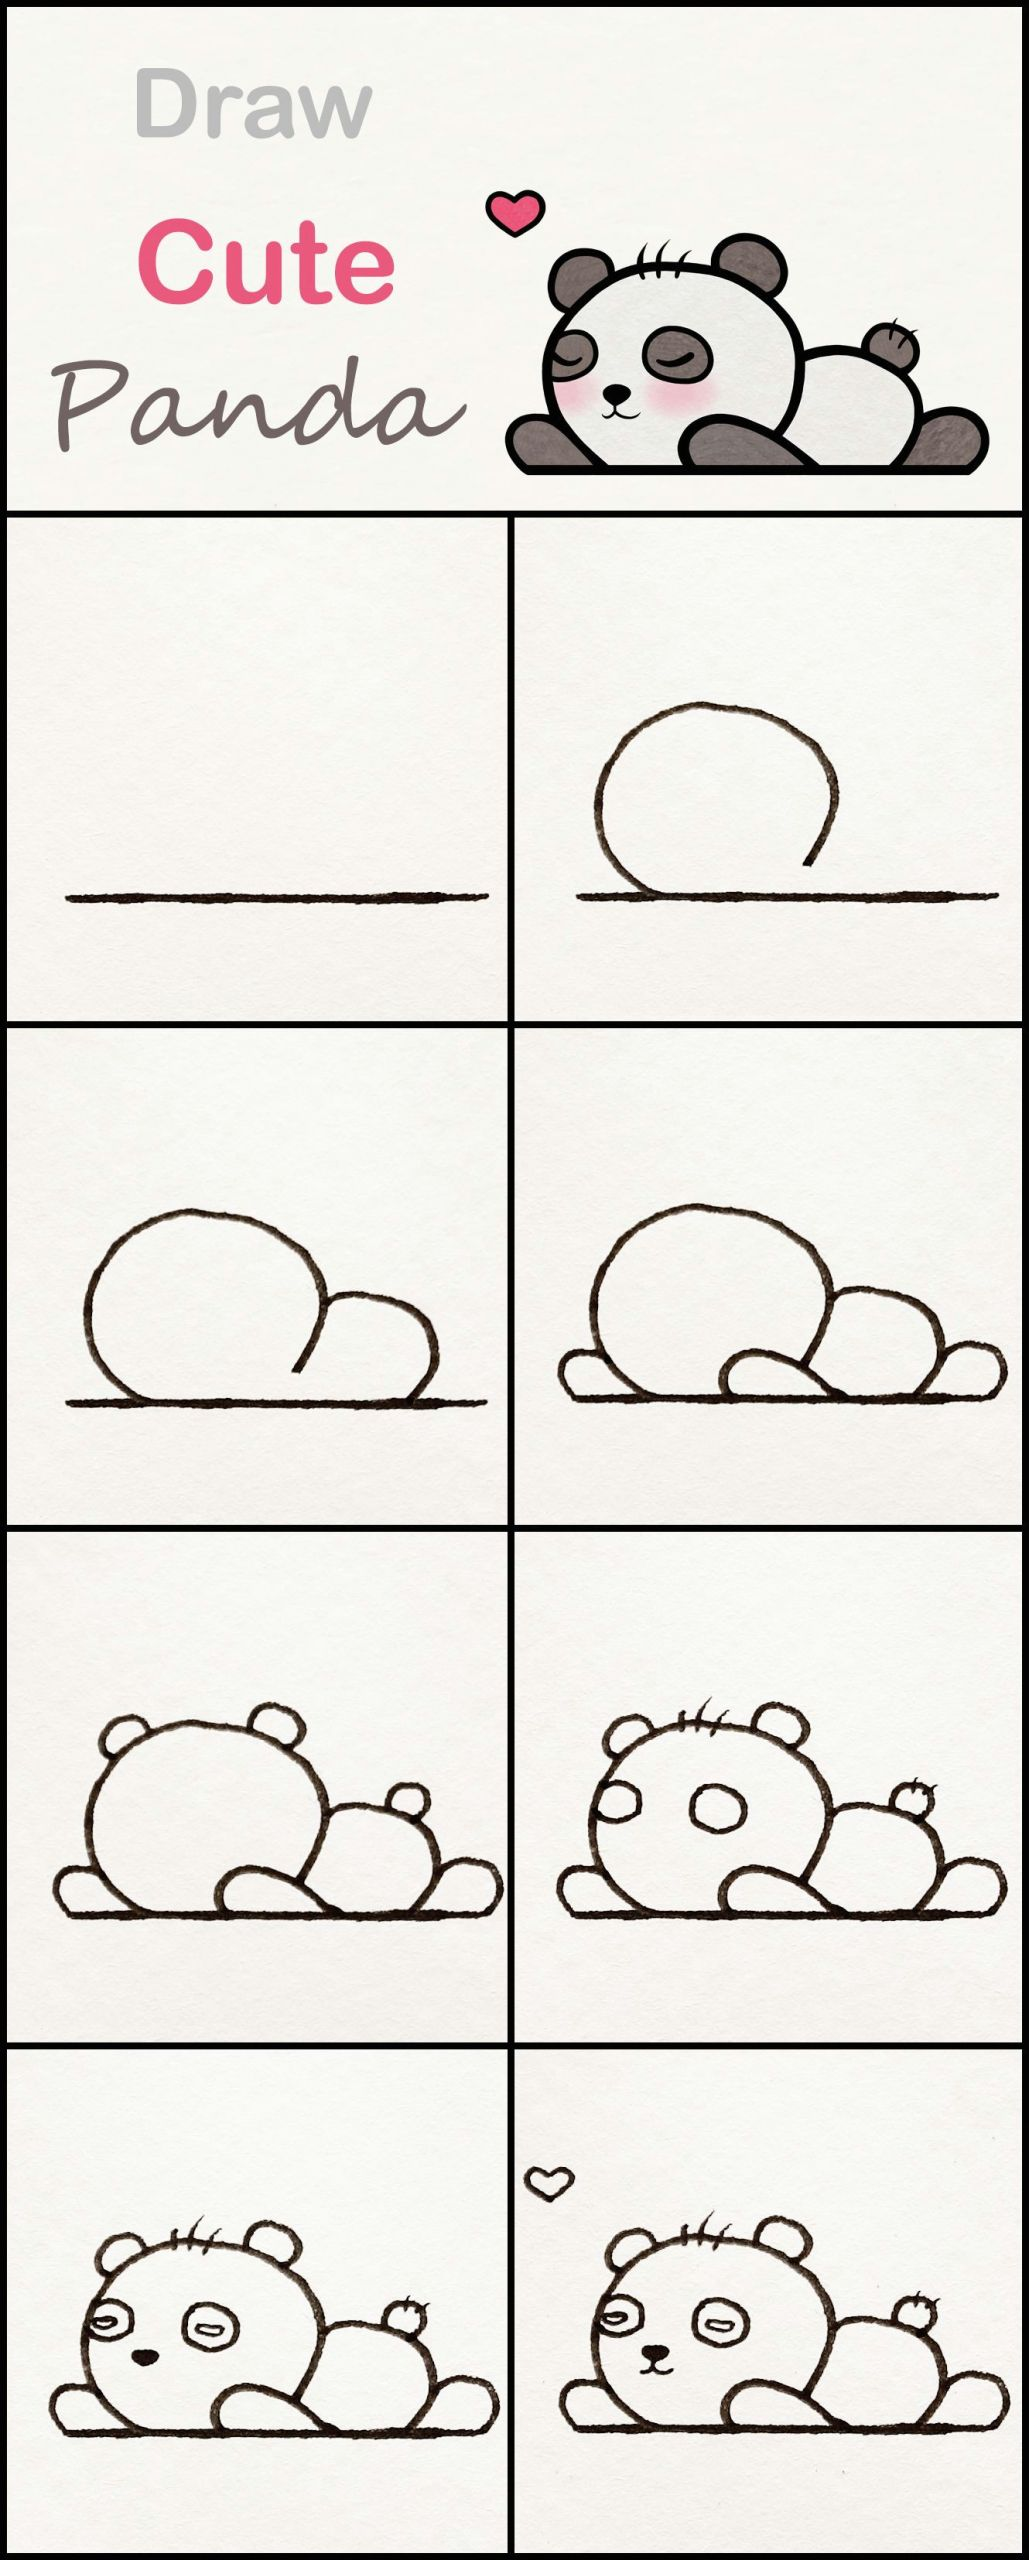 Cute Easy Drawings Step by Step Animals Learn How to Draw A Cute Baby Panda Step by Step A Very